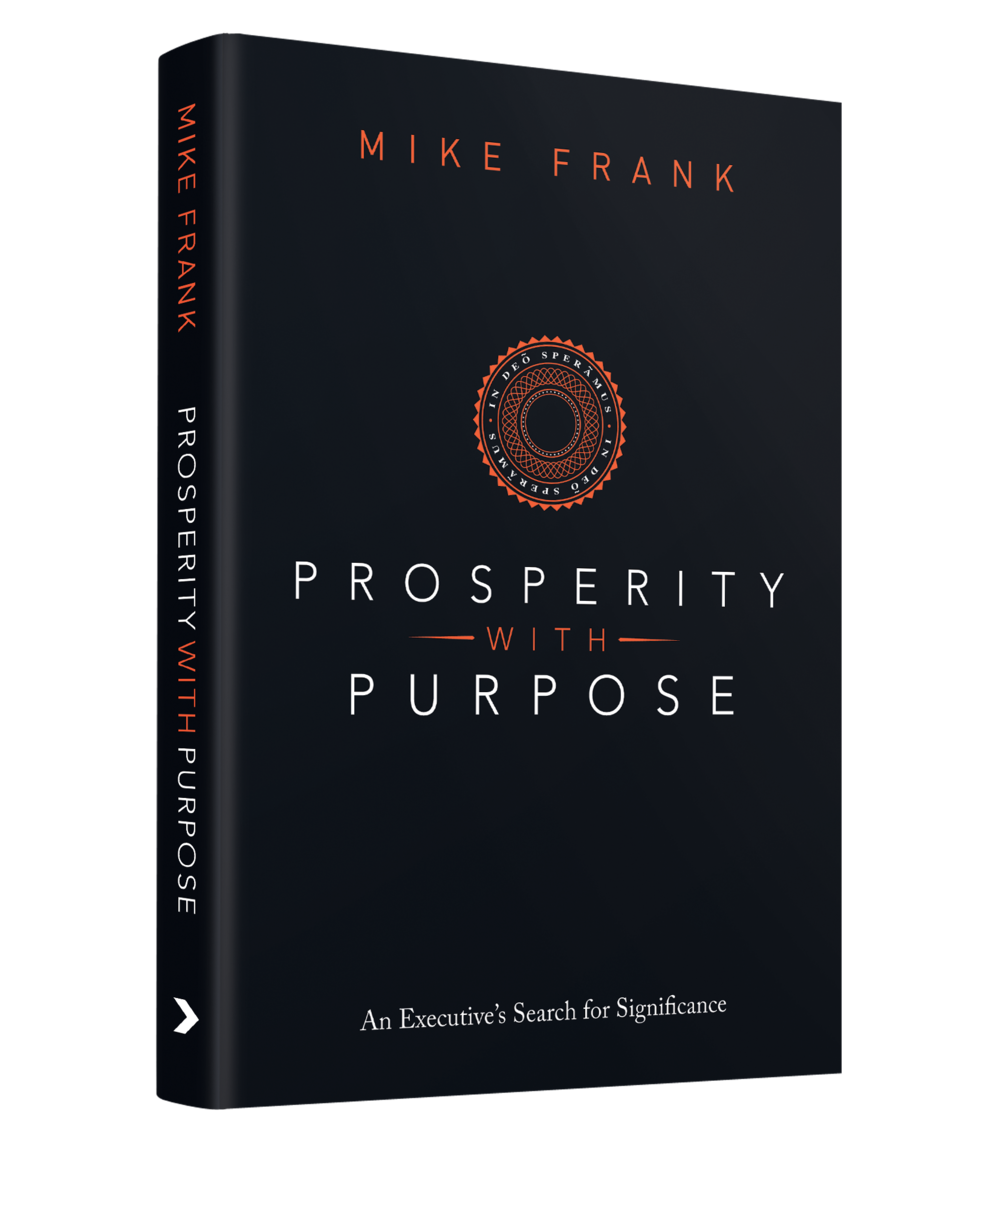 Book Cover Design / Prosperity with Purpose